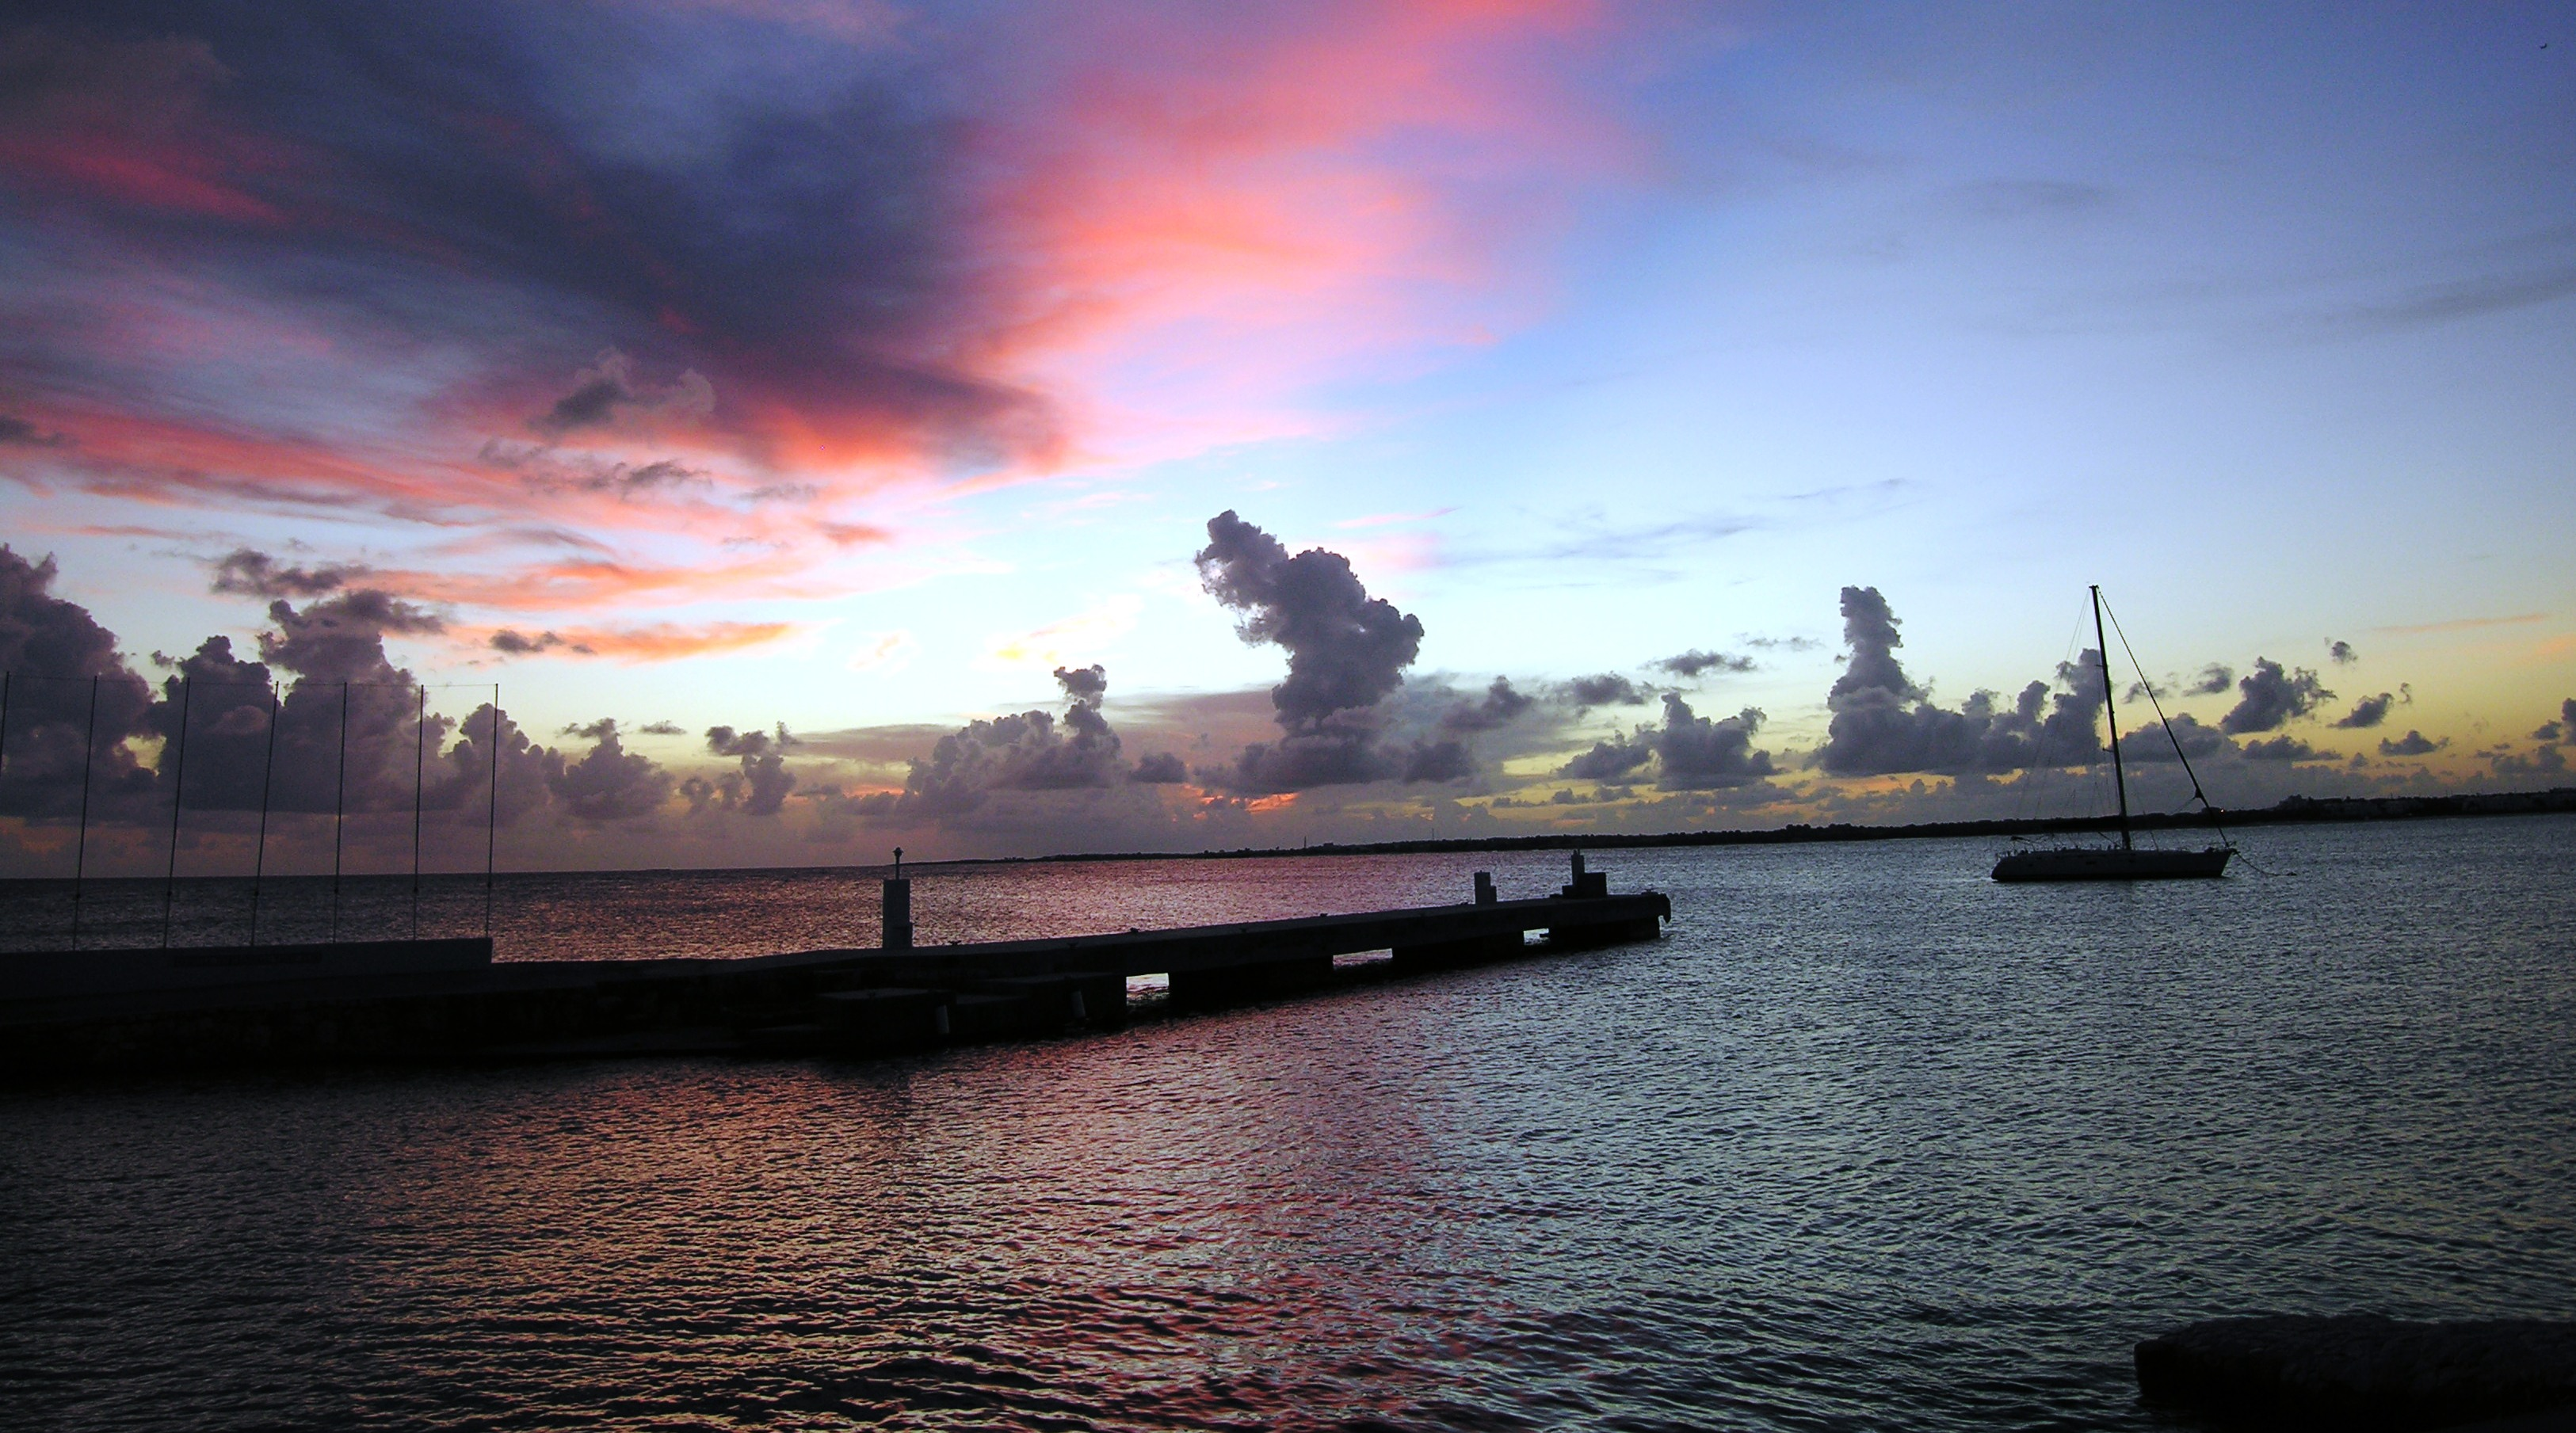 AIYC pier at sunset